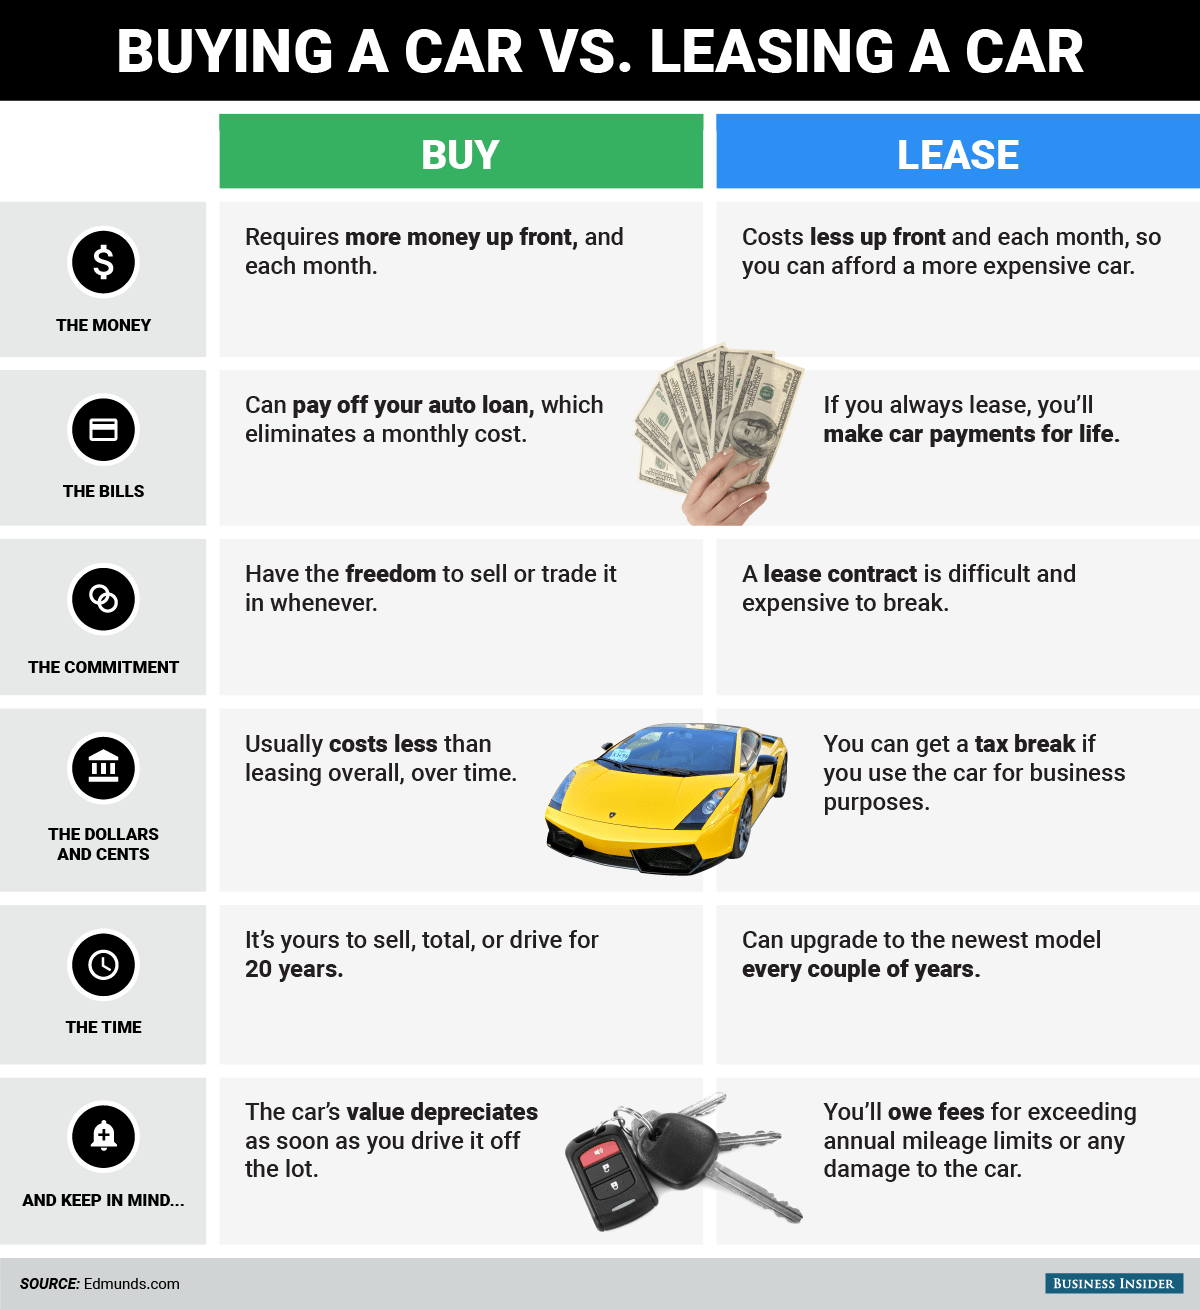 Check Out Our Car Leasing Vs Buying Guide To Make The